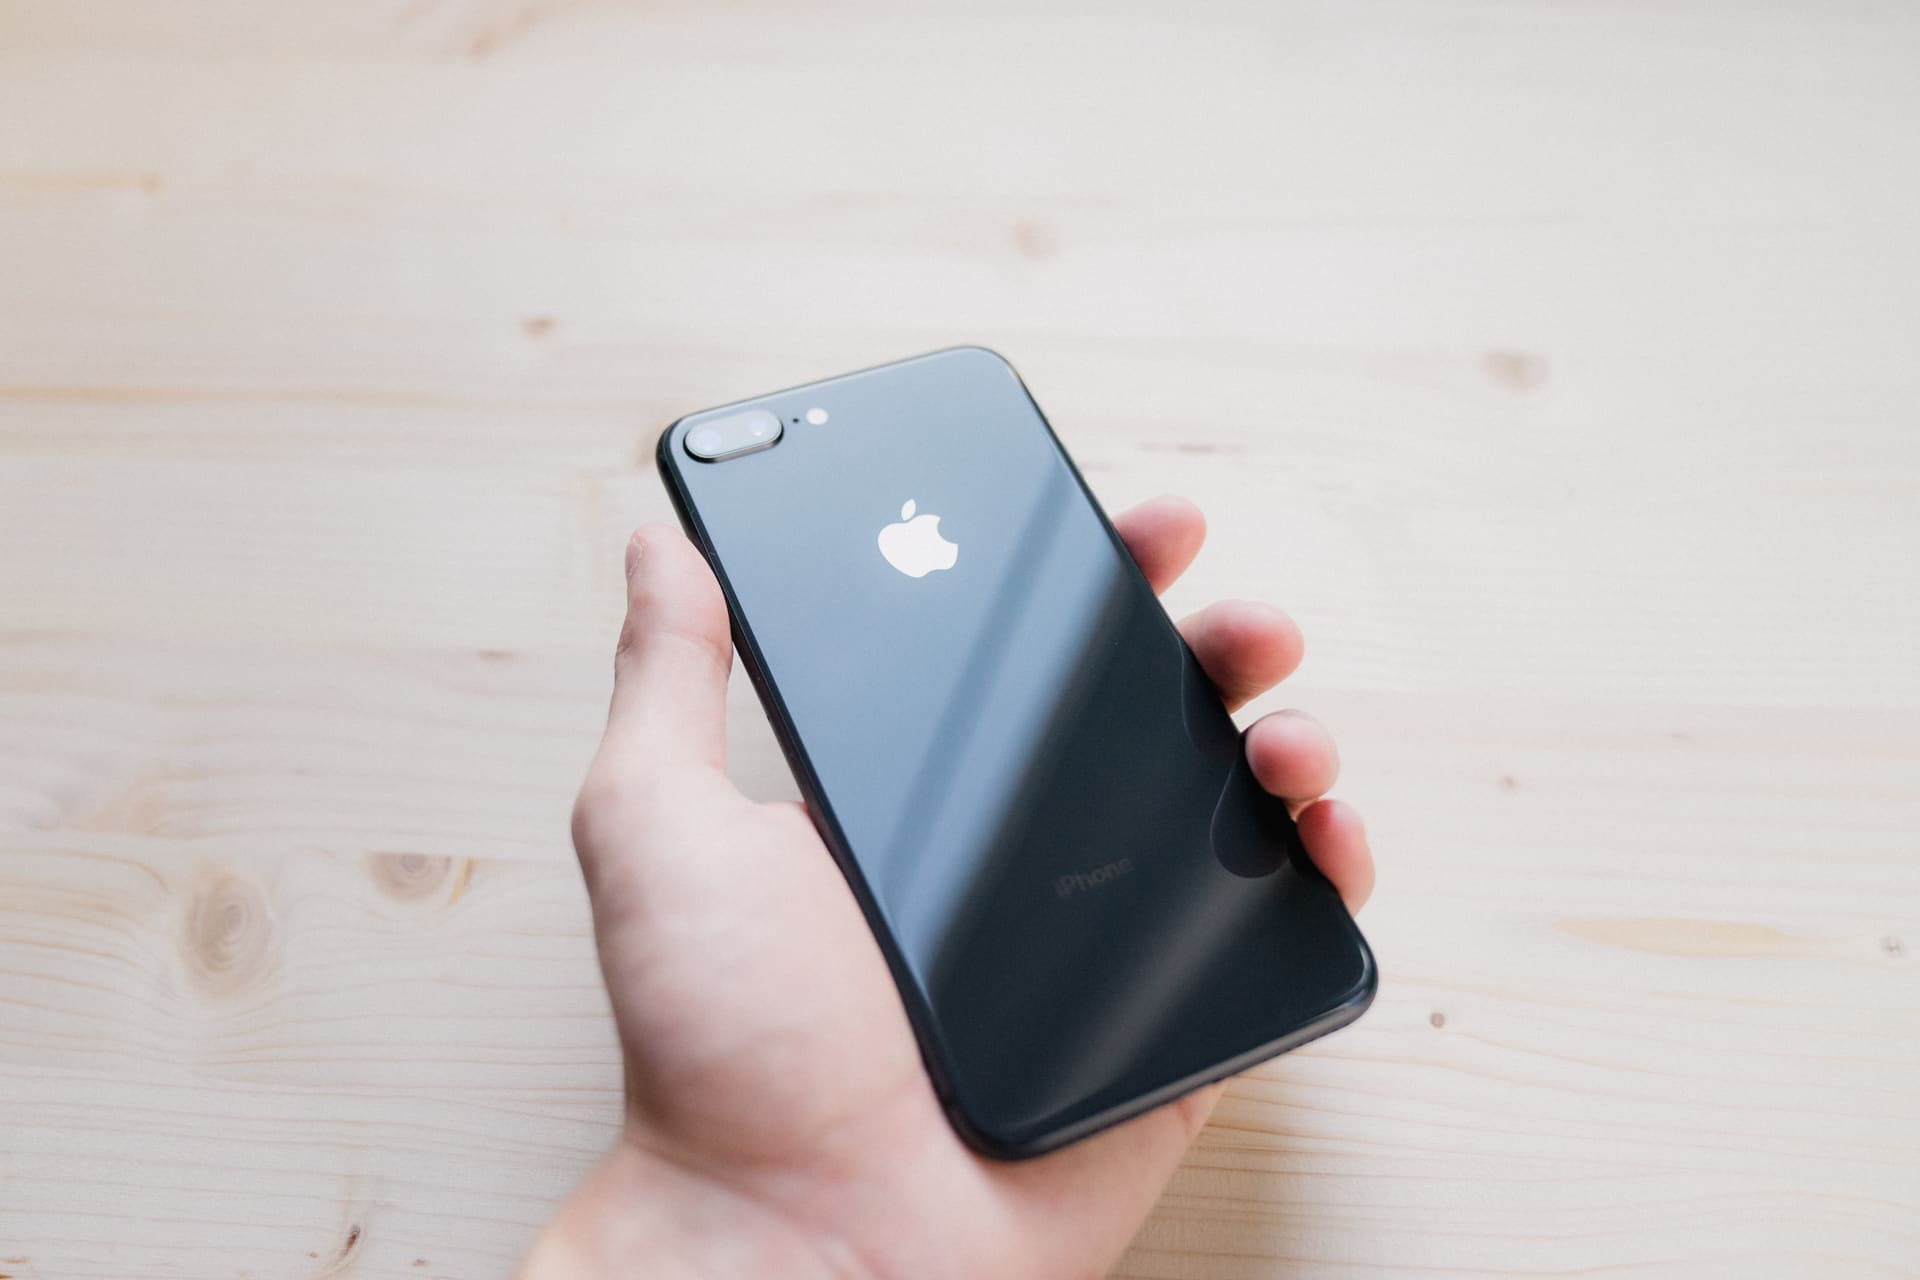 """8e19c0b1b34222 Or maybe I'm overthinking it. It's often easier to assume there are some  complex, ideological idiosyncrasies underlying the release of the iPhone 8  Plus """" ..."""